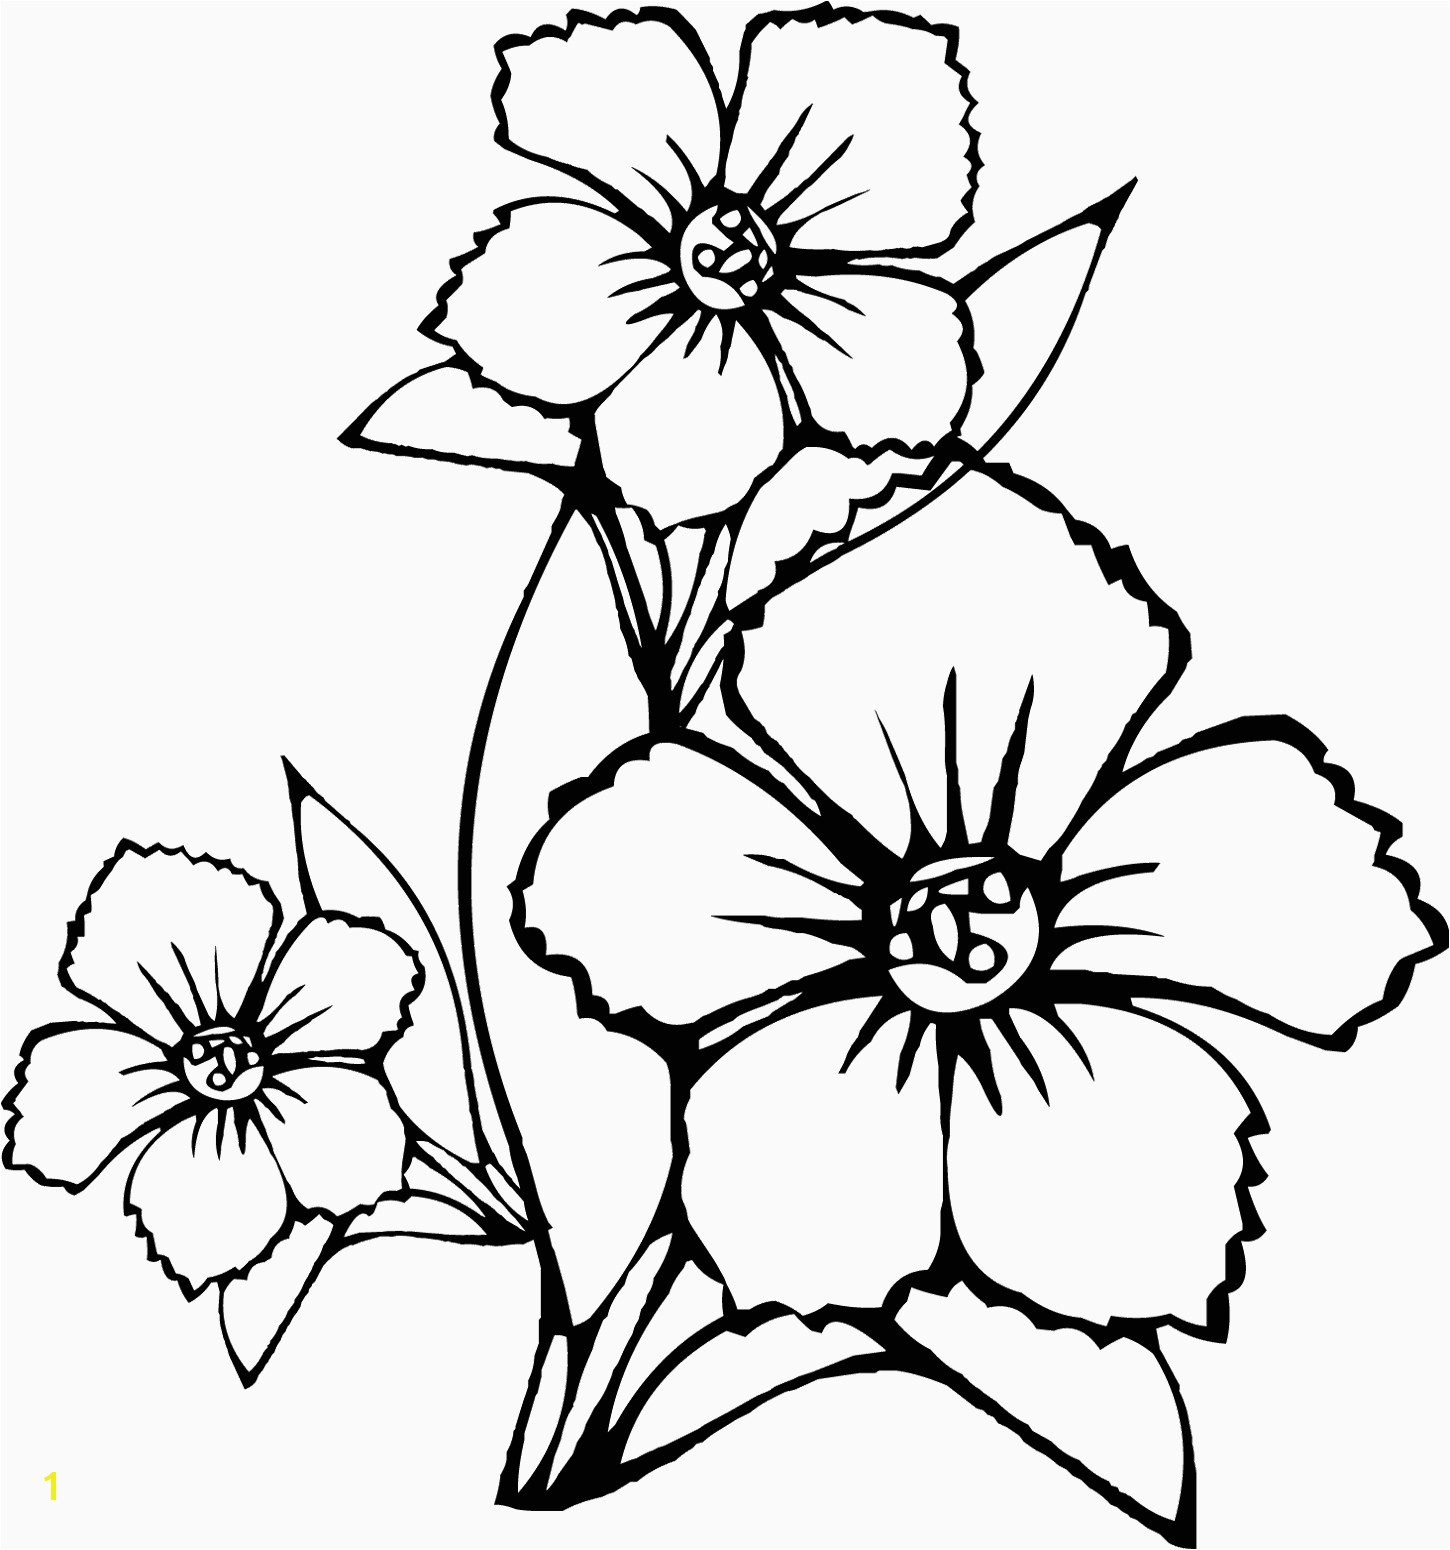 Hawaiian Flower Coloring Page California State Flower Coloring Page Coloring Pages Hawaiian